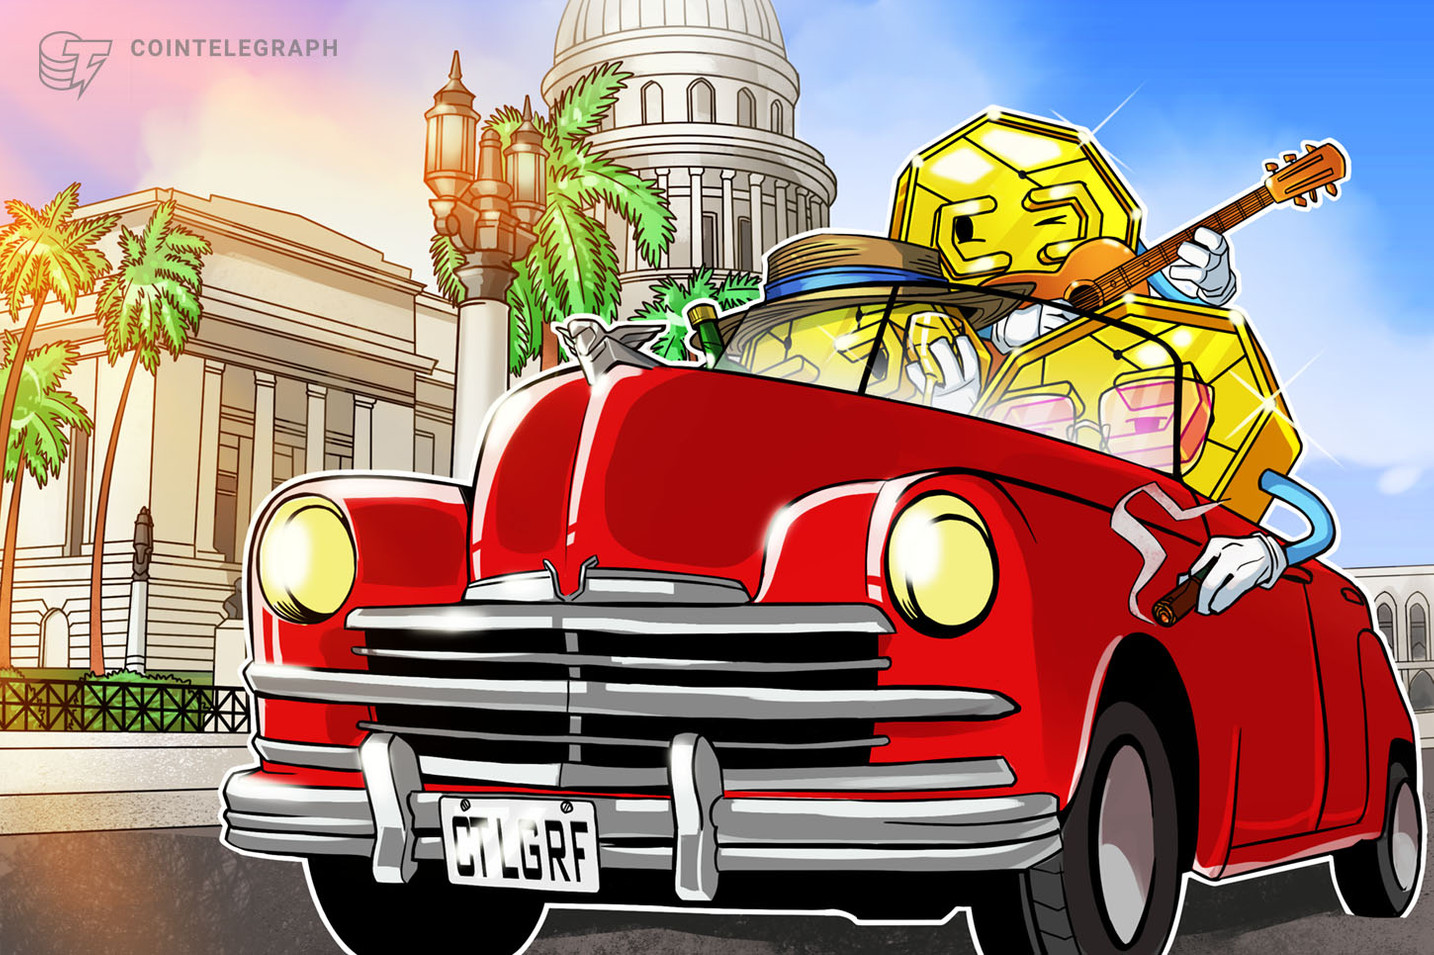 El primer exchange P2P de Bitcoin de Cuba se lanza en medio de la incertidumbre regulatoria